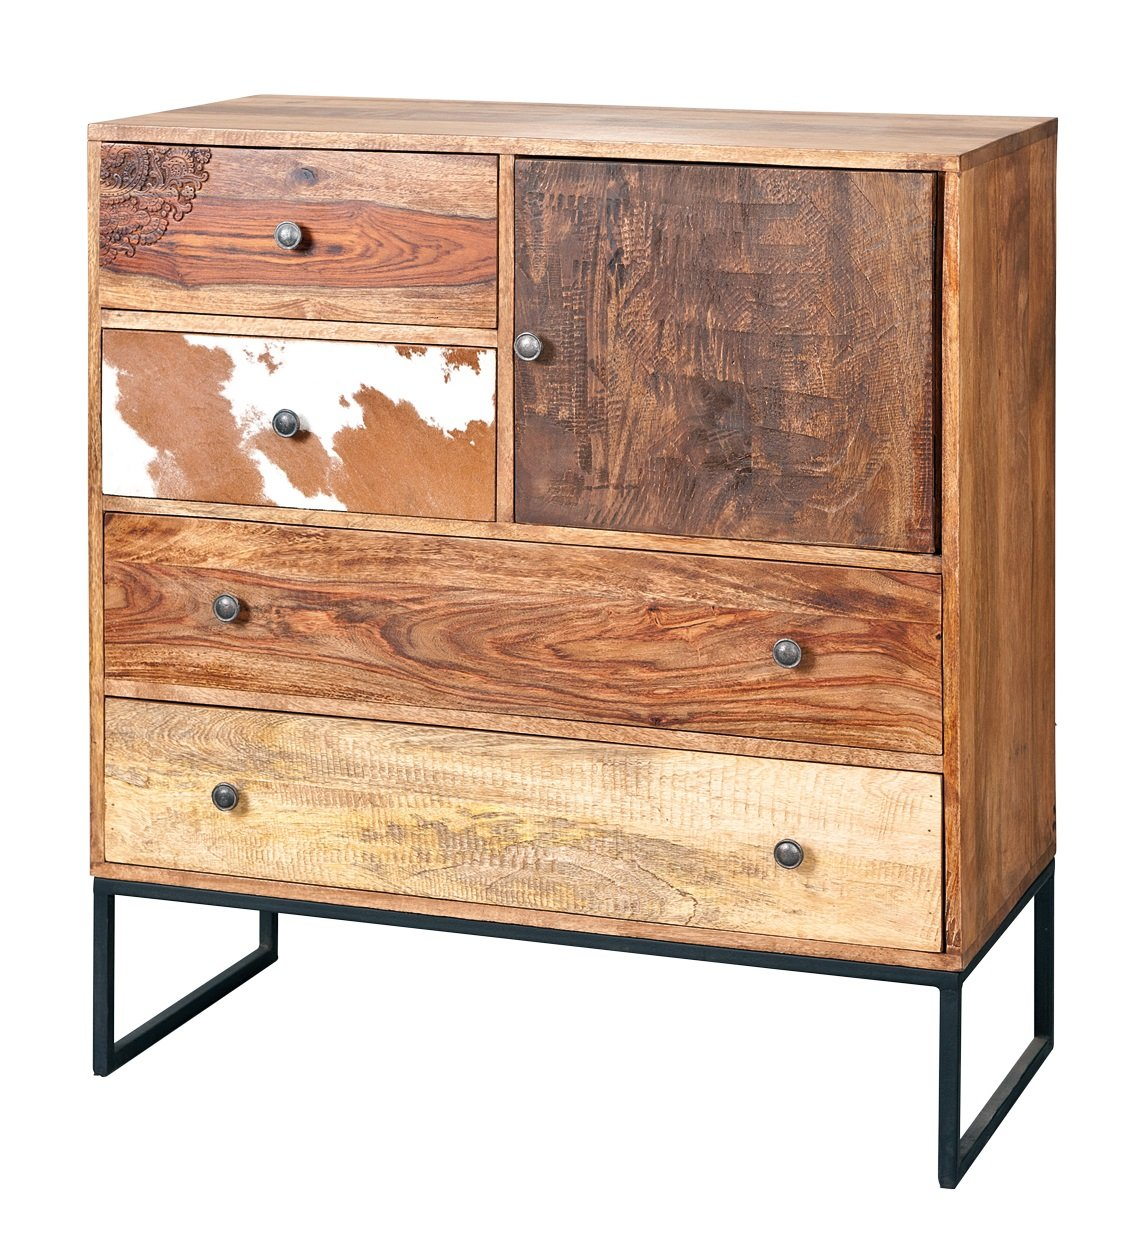 Natural look chest of drawers in mango wood furniture